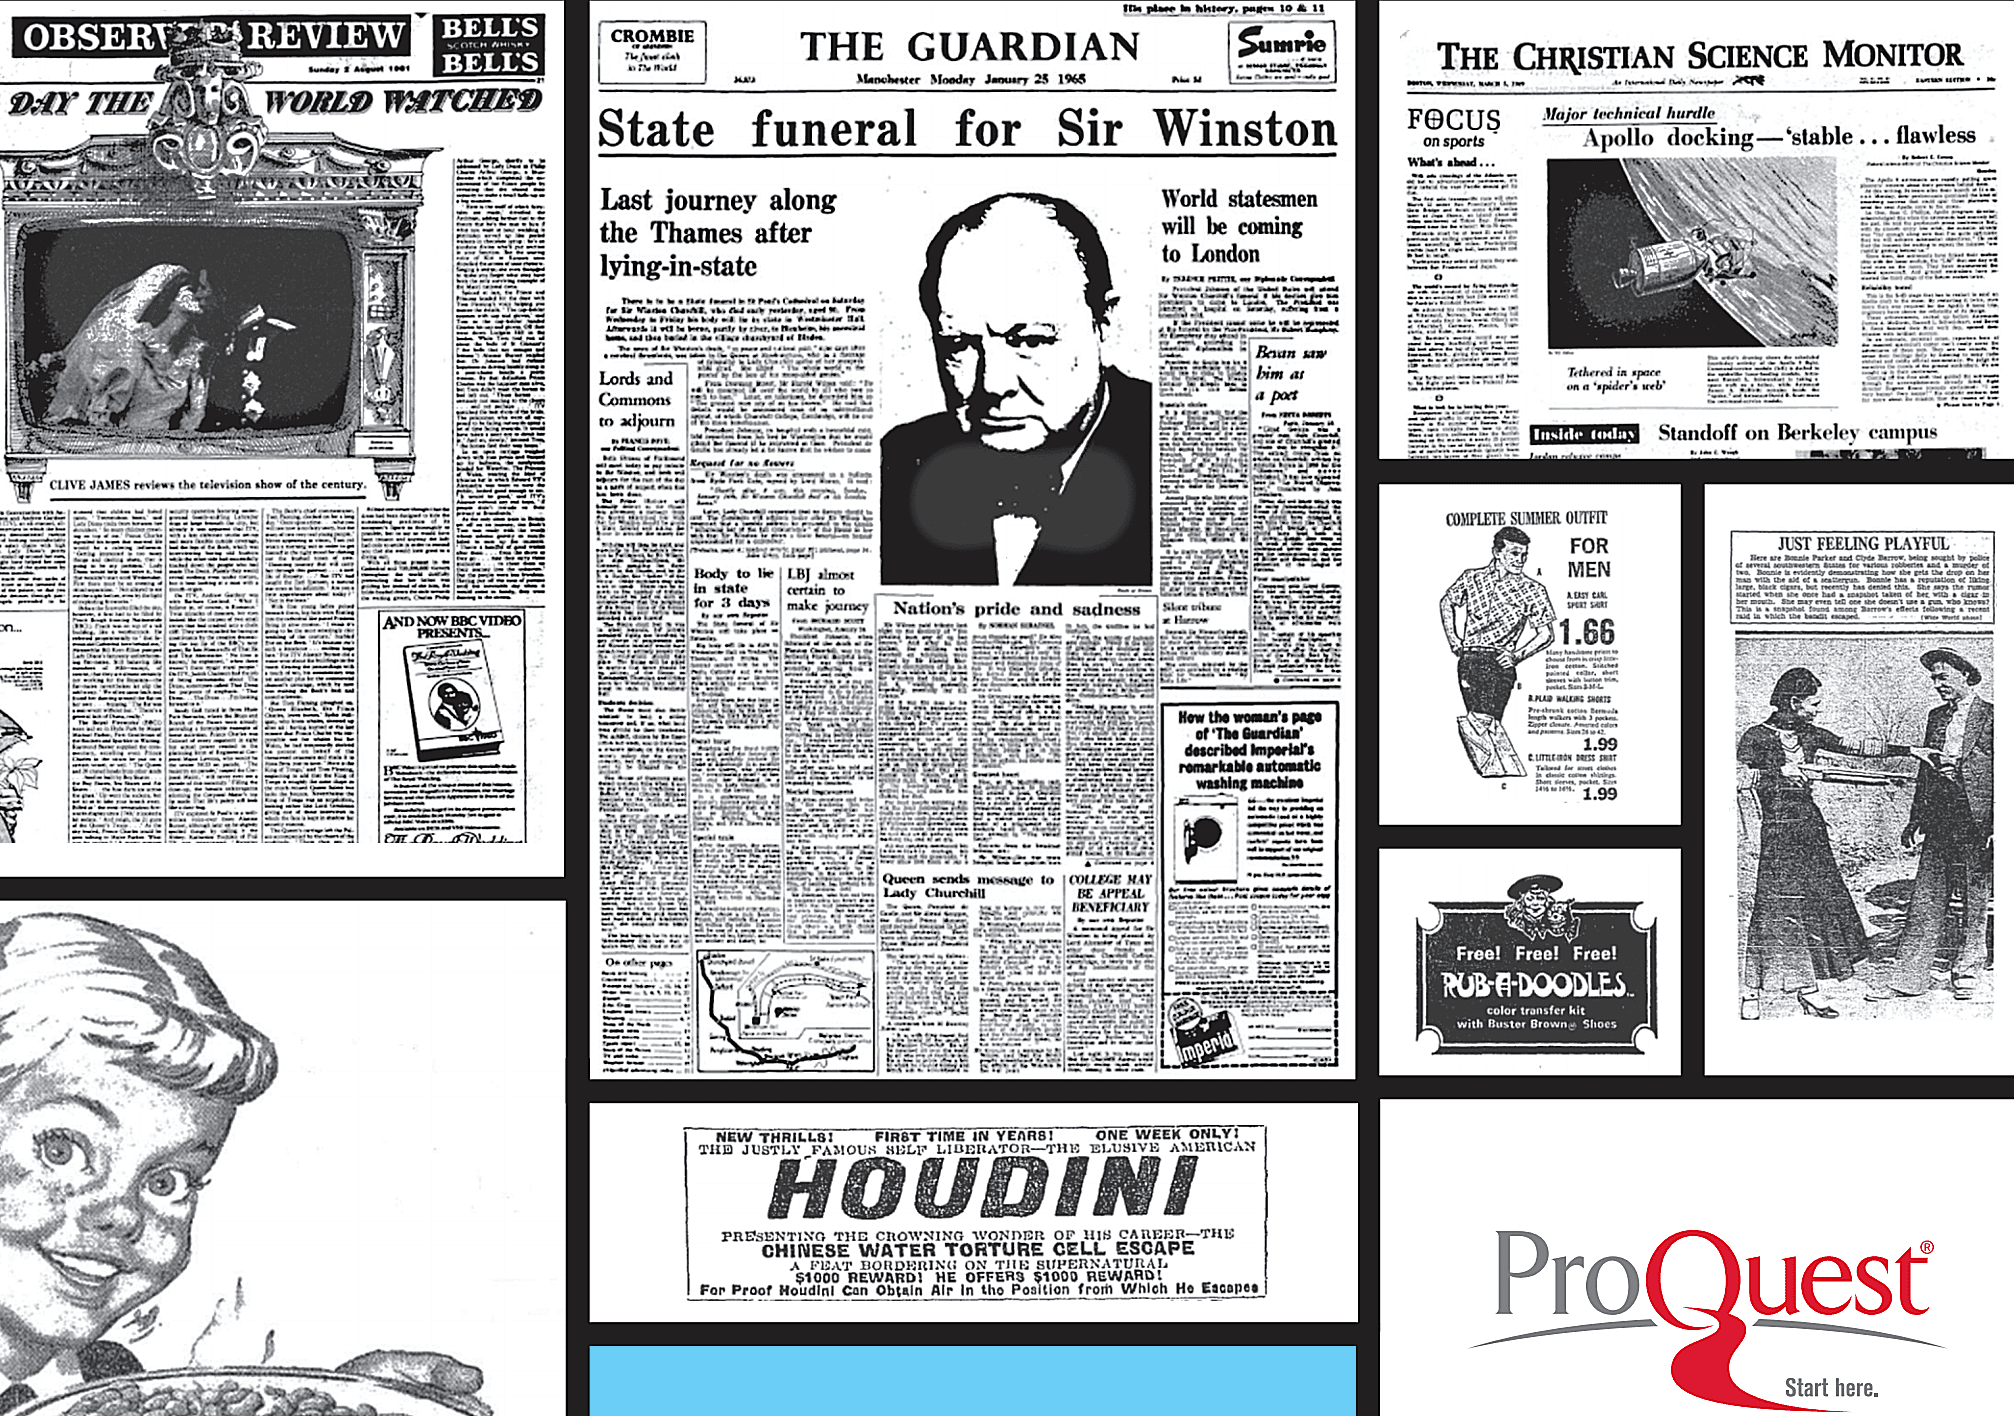 Contact your local public or academic library to see if they offer free access to ProQuest Historical Newspapers.